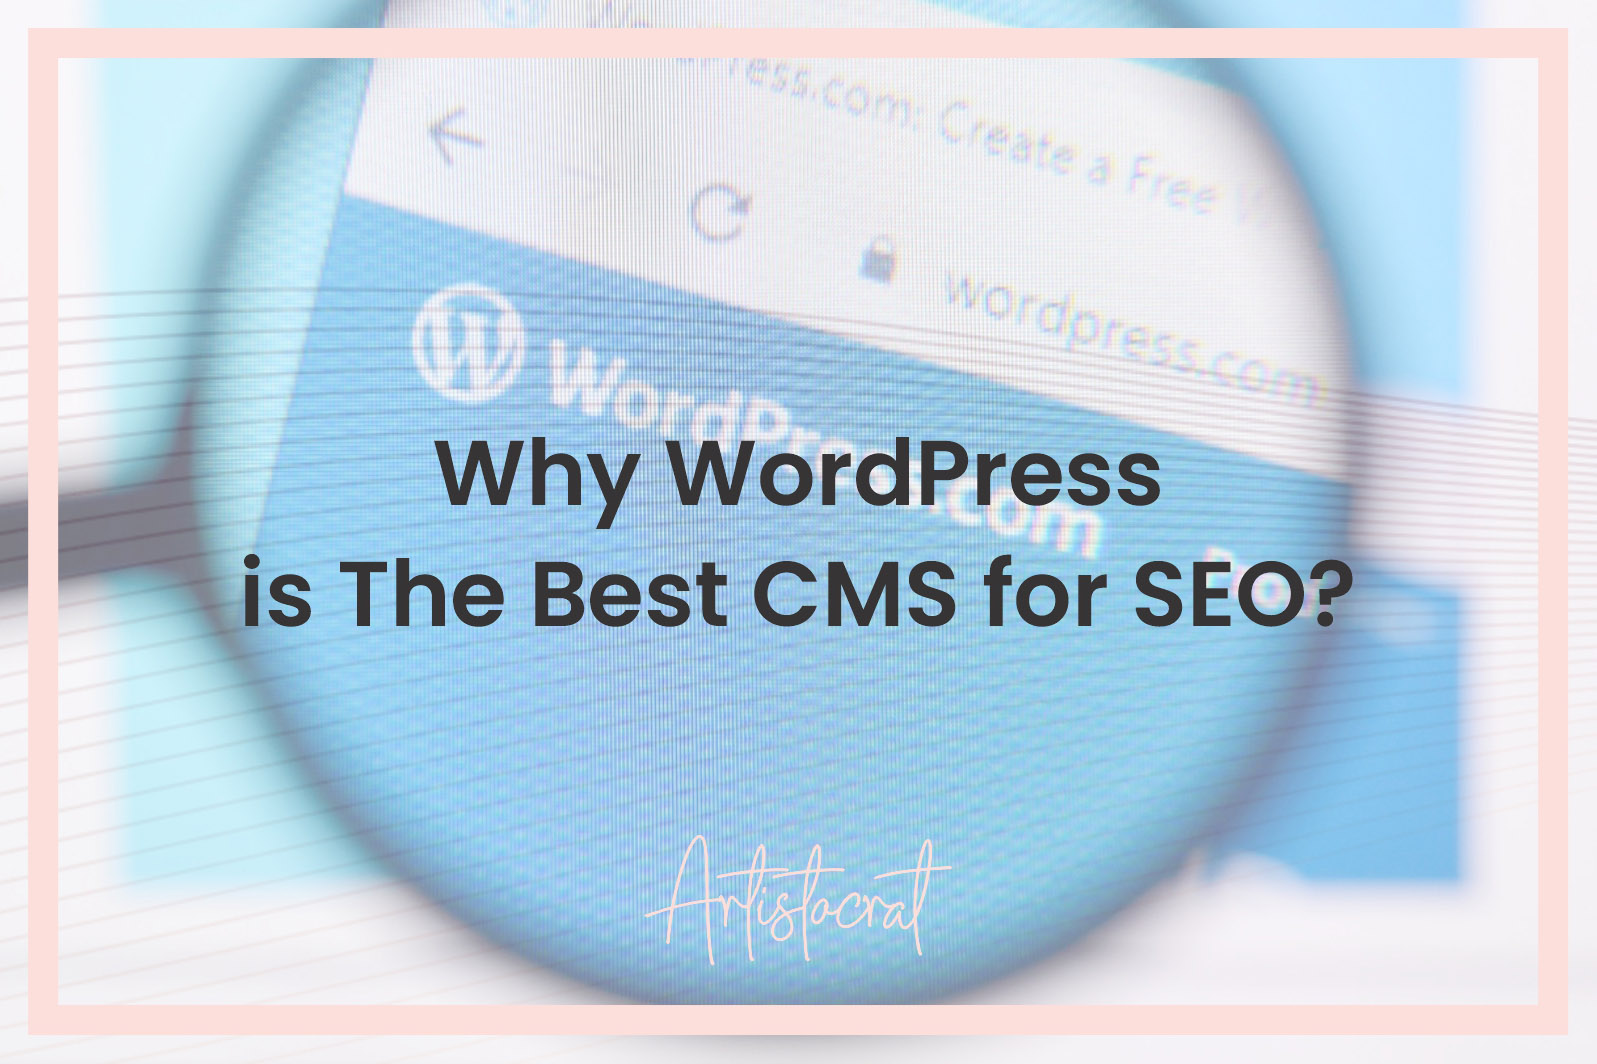 Why-Wordpress-The-Best-CMS-SEO